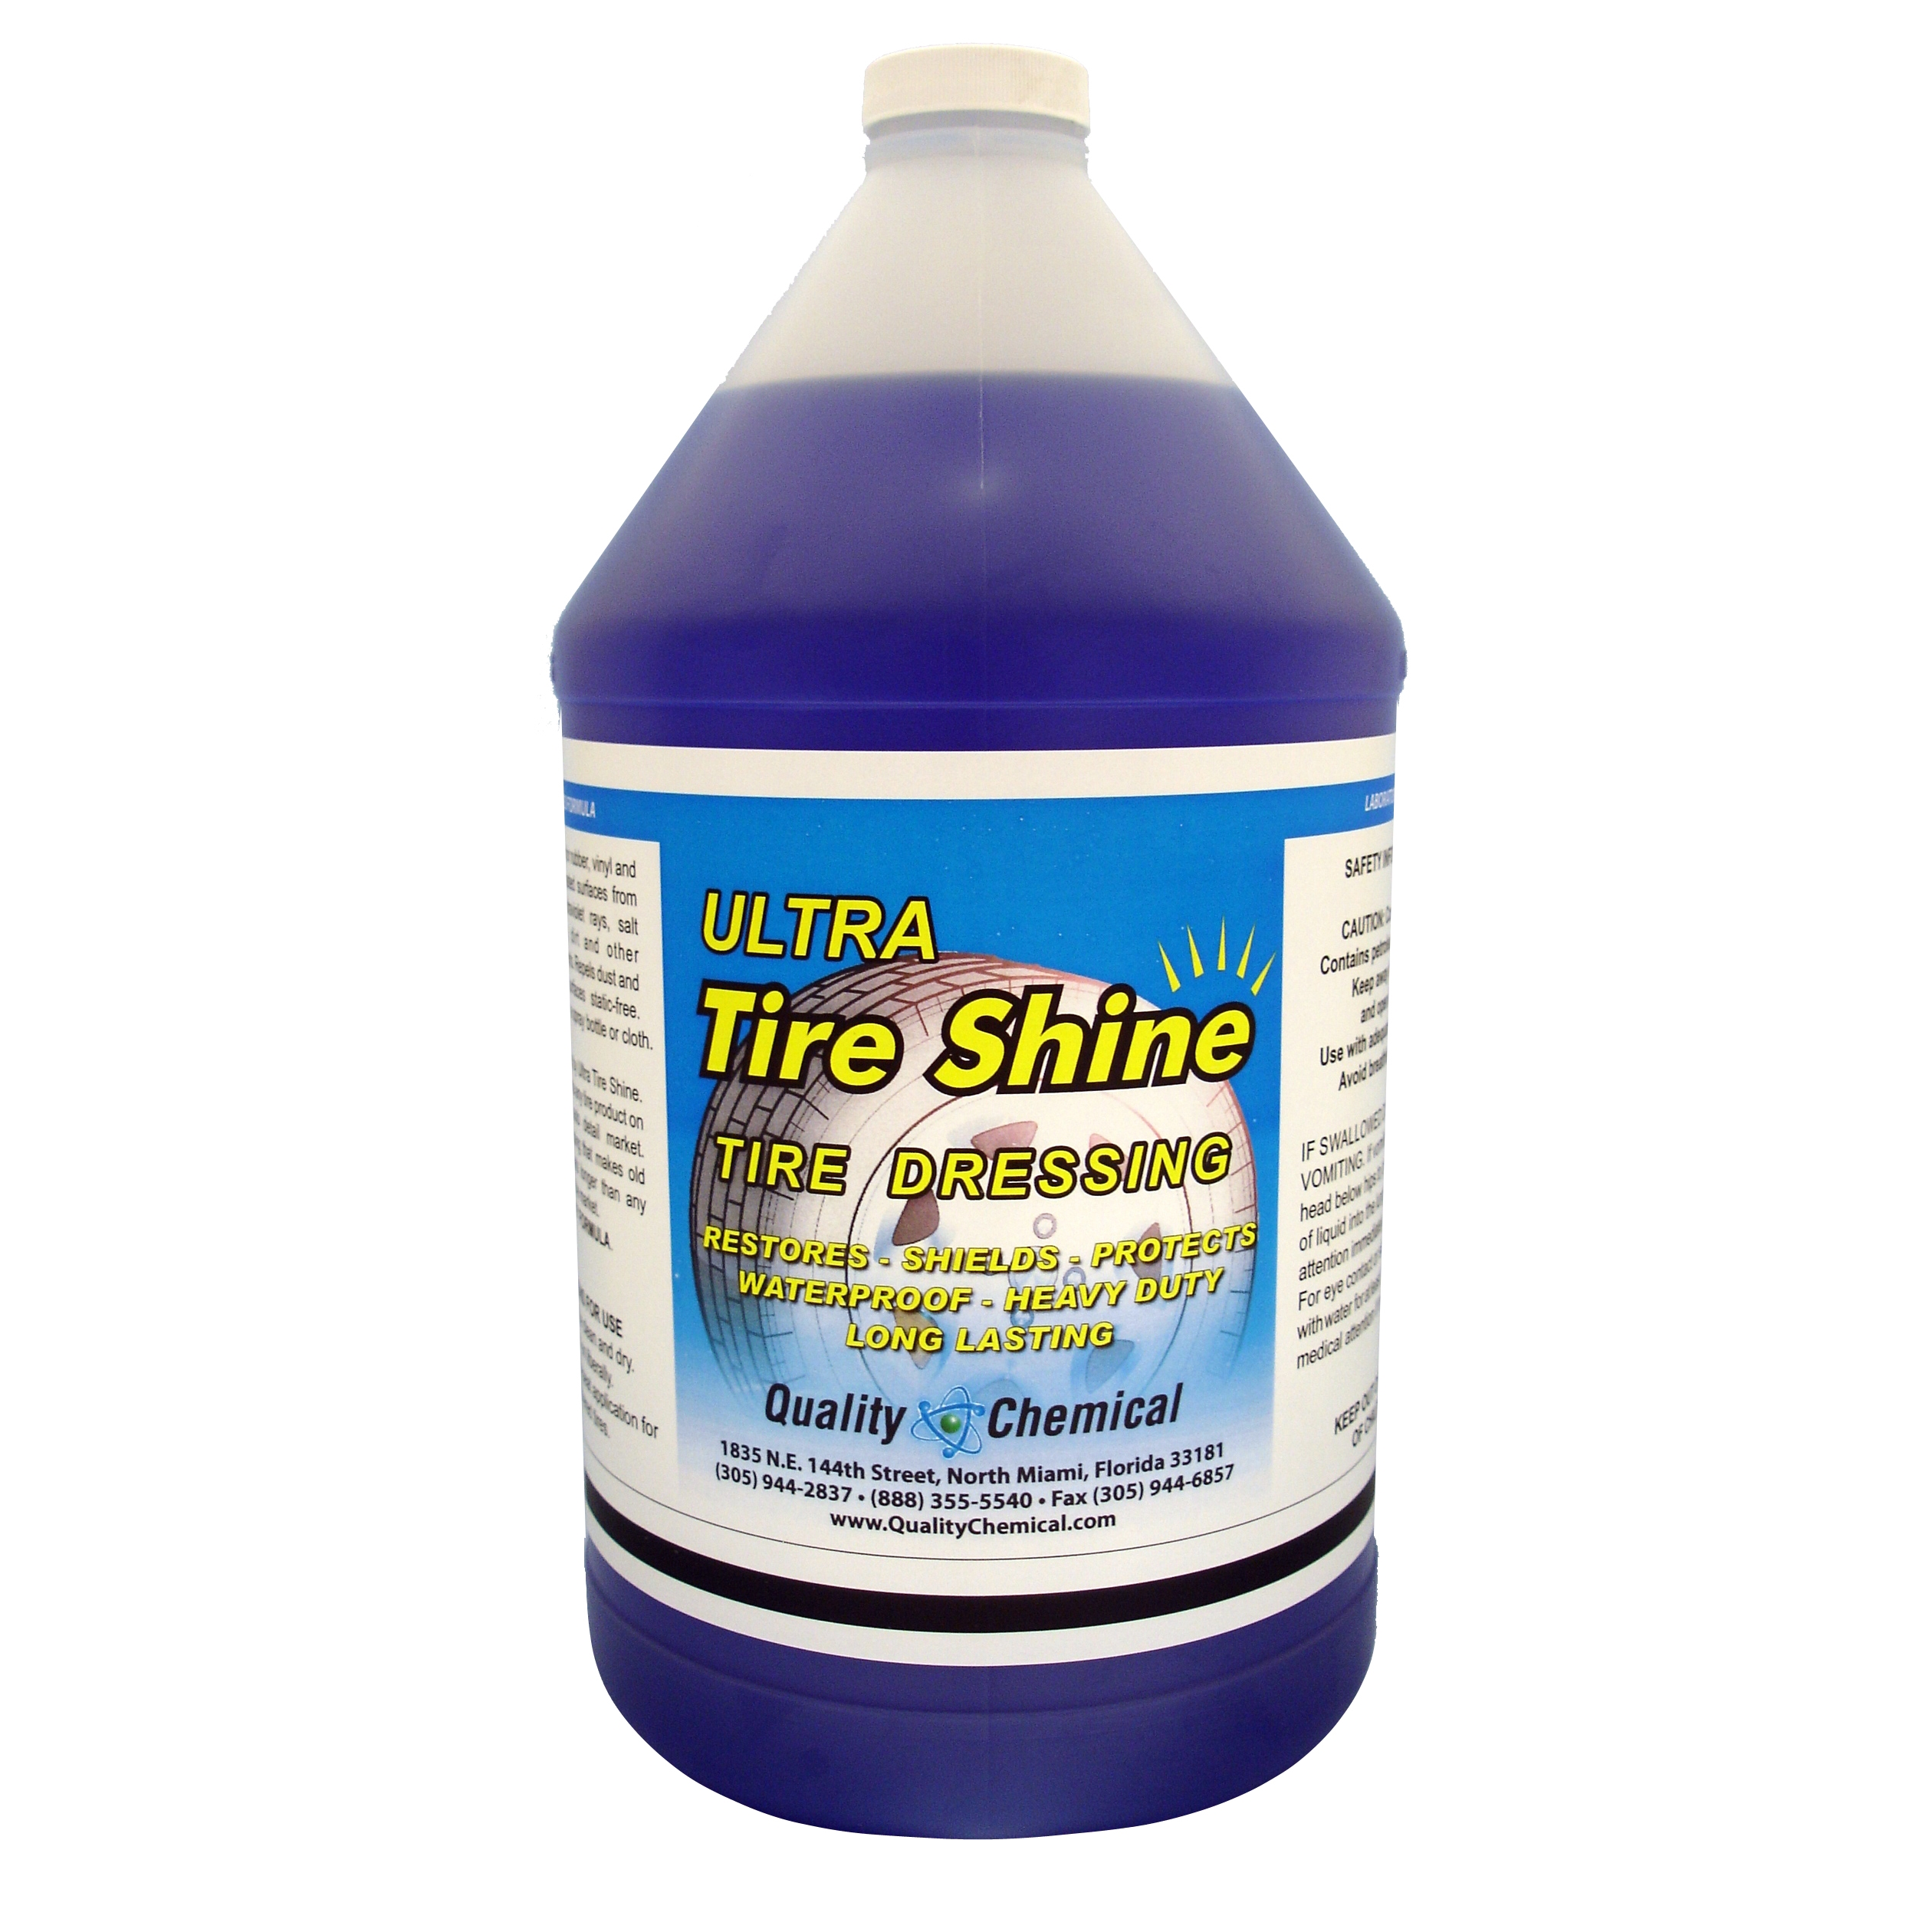 Ultra Tire Shine